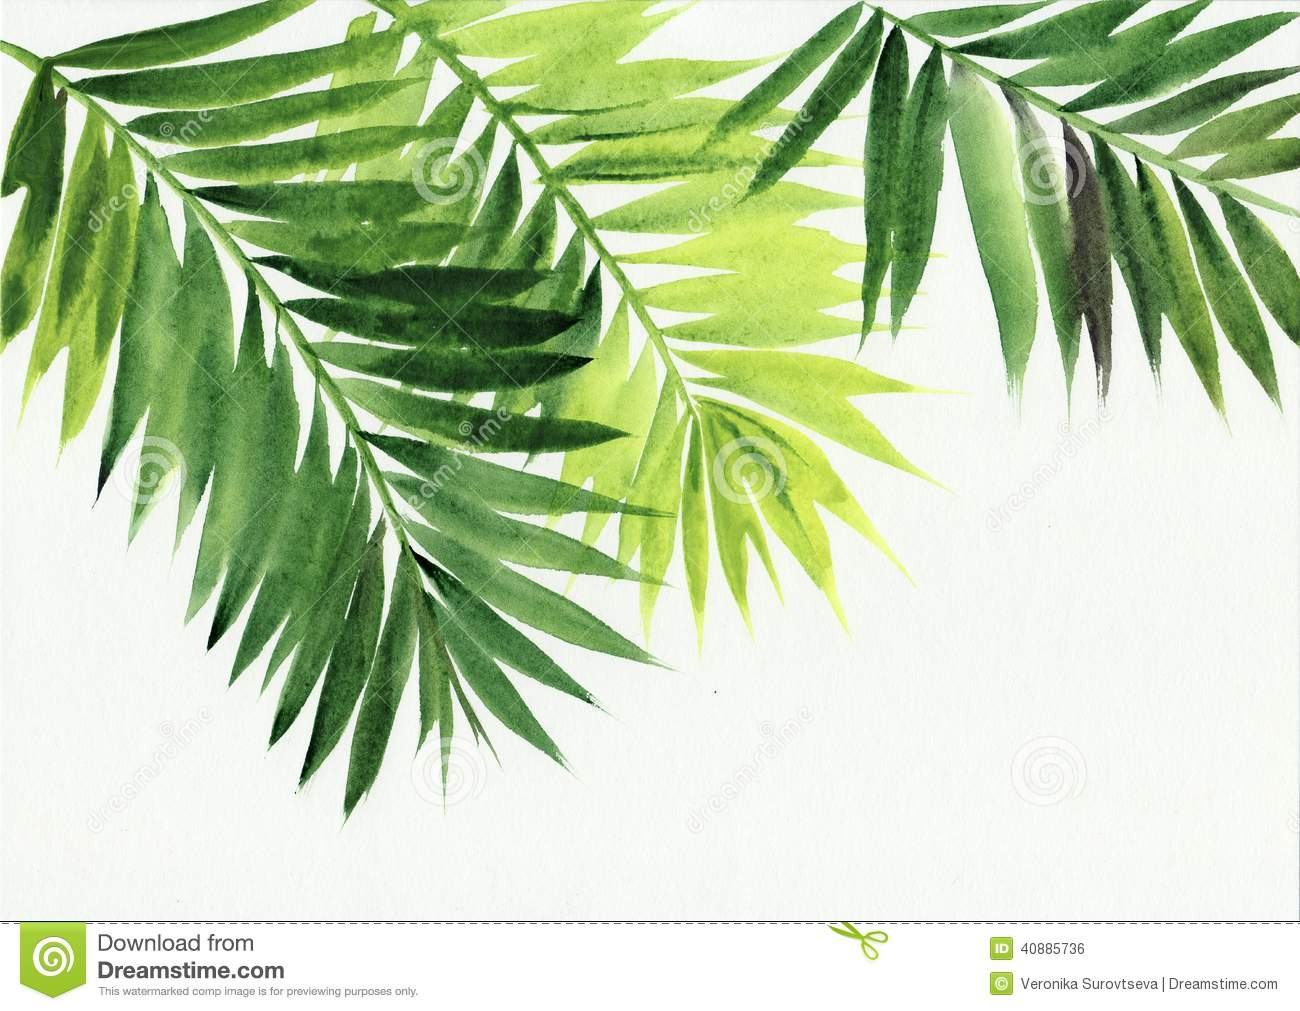 Palm leaves isolated on white background. Original watercolor painting